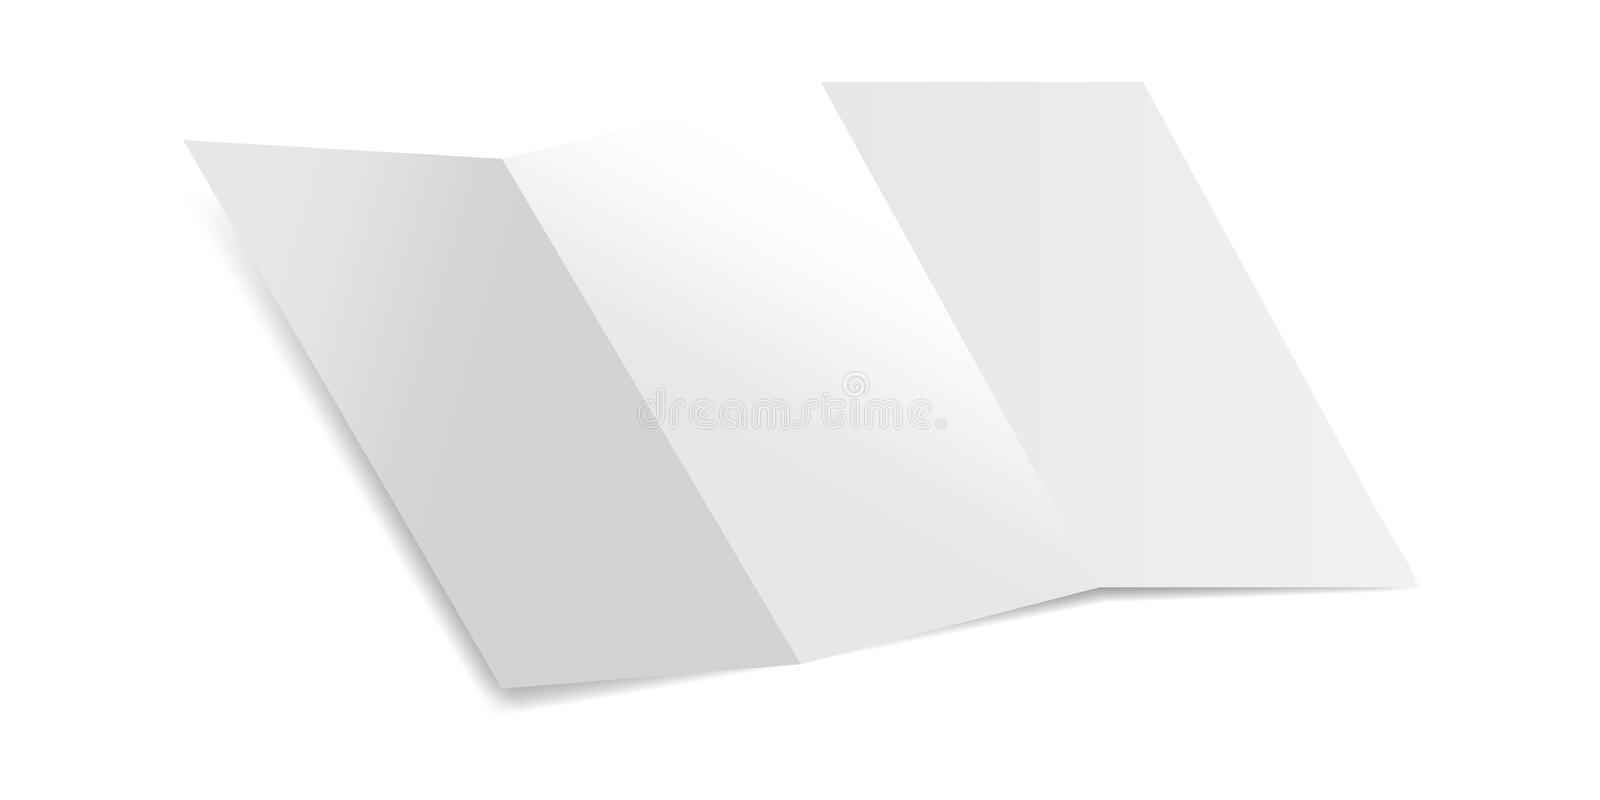 Trifold Blank Piece of Paper with shadows Mockup Vector Illustration. Mock up of a letter paper isolated on a white background. stock illustration